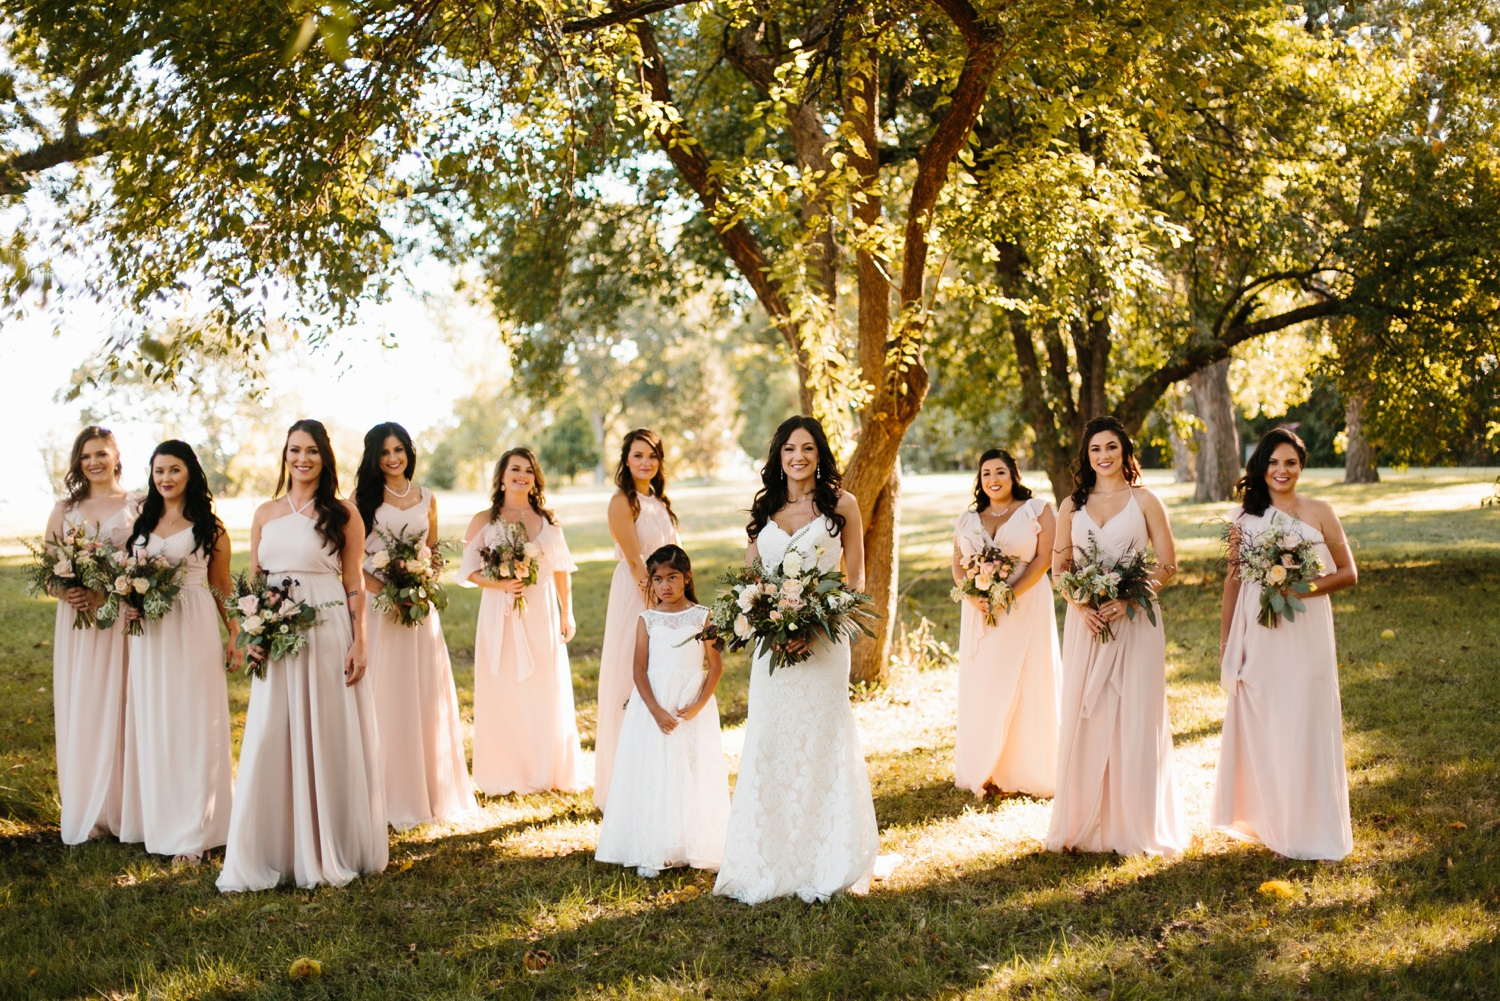 Erica + Henry | a bohemian inspired wedding at Chandlers Gardens in Salina, TX by North Texas Wedding Photographer Rachel Meagan Photography 056